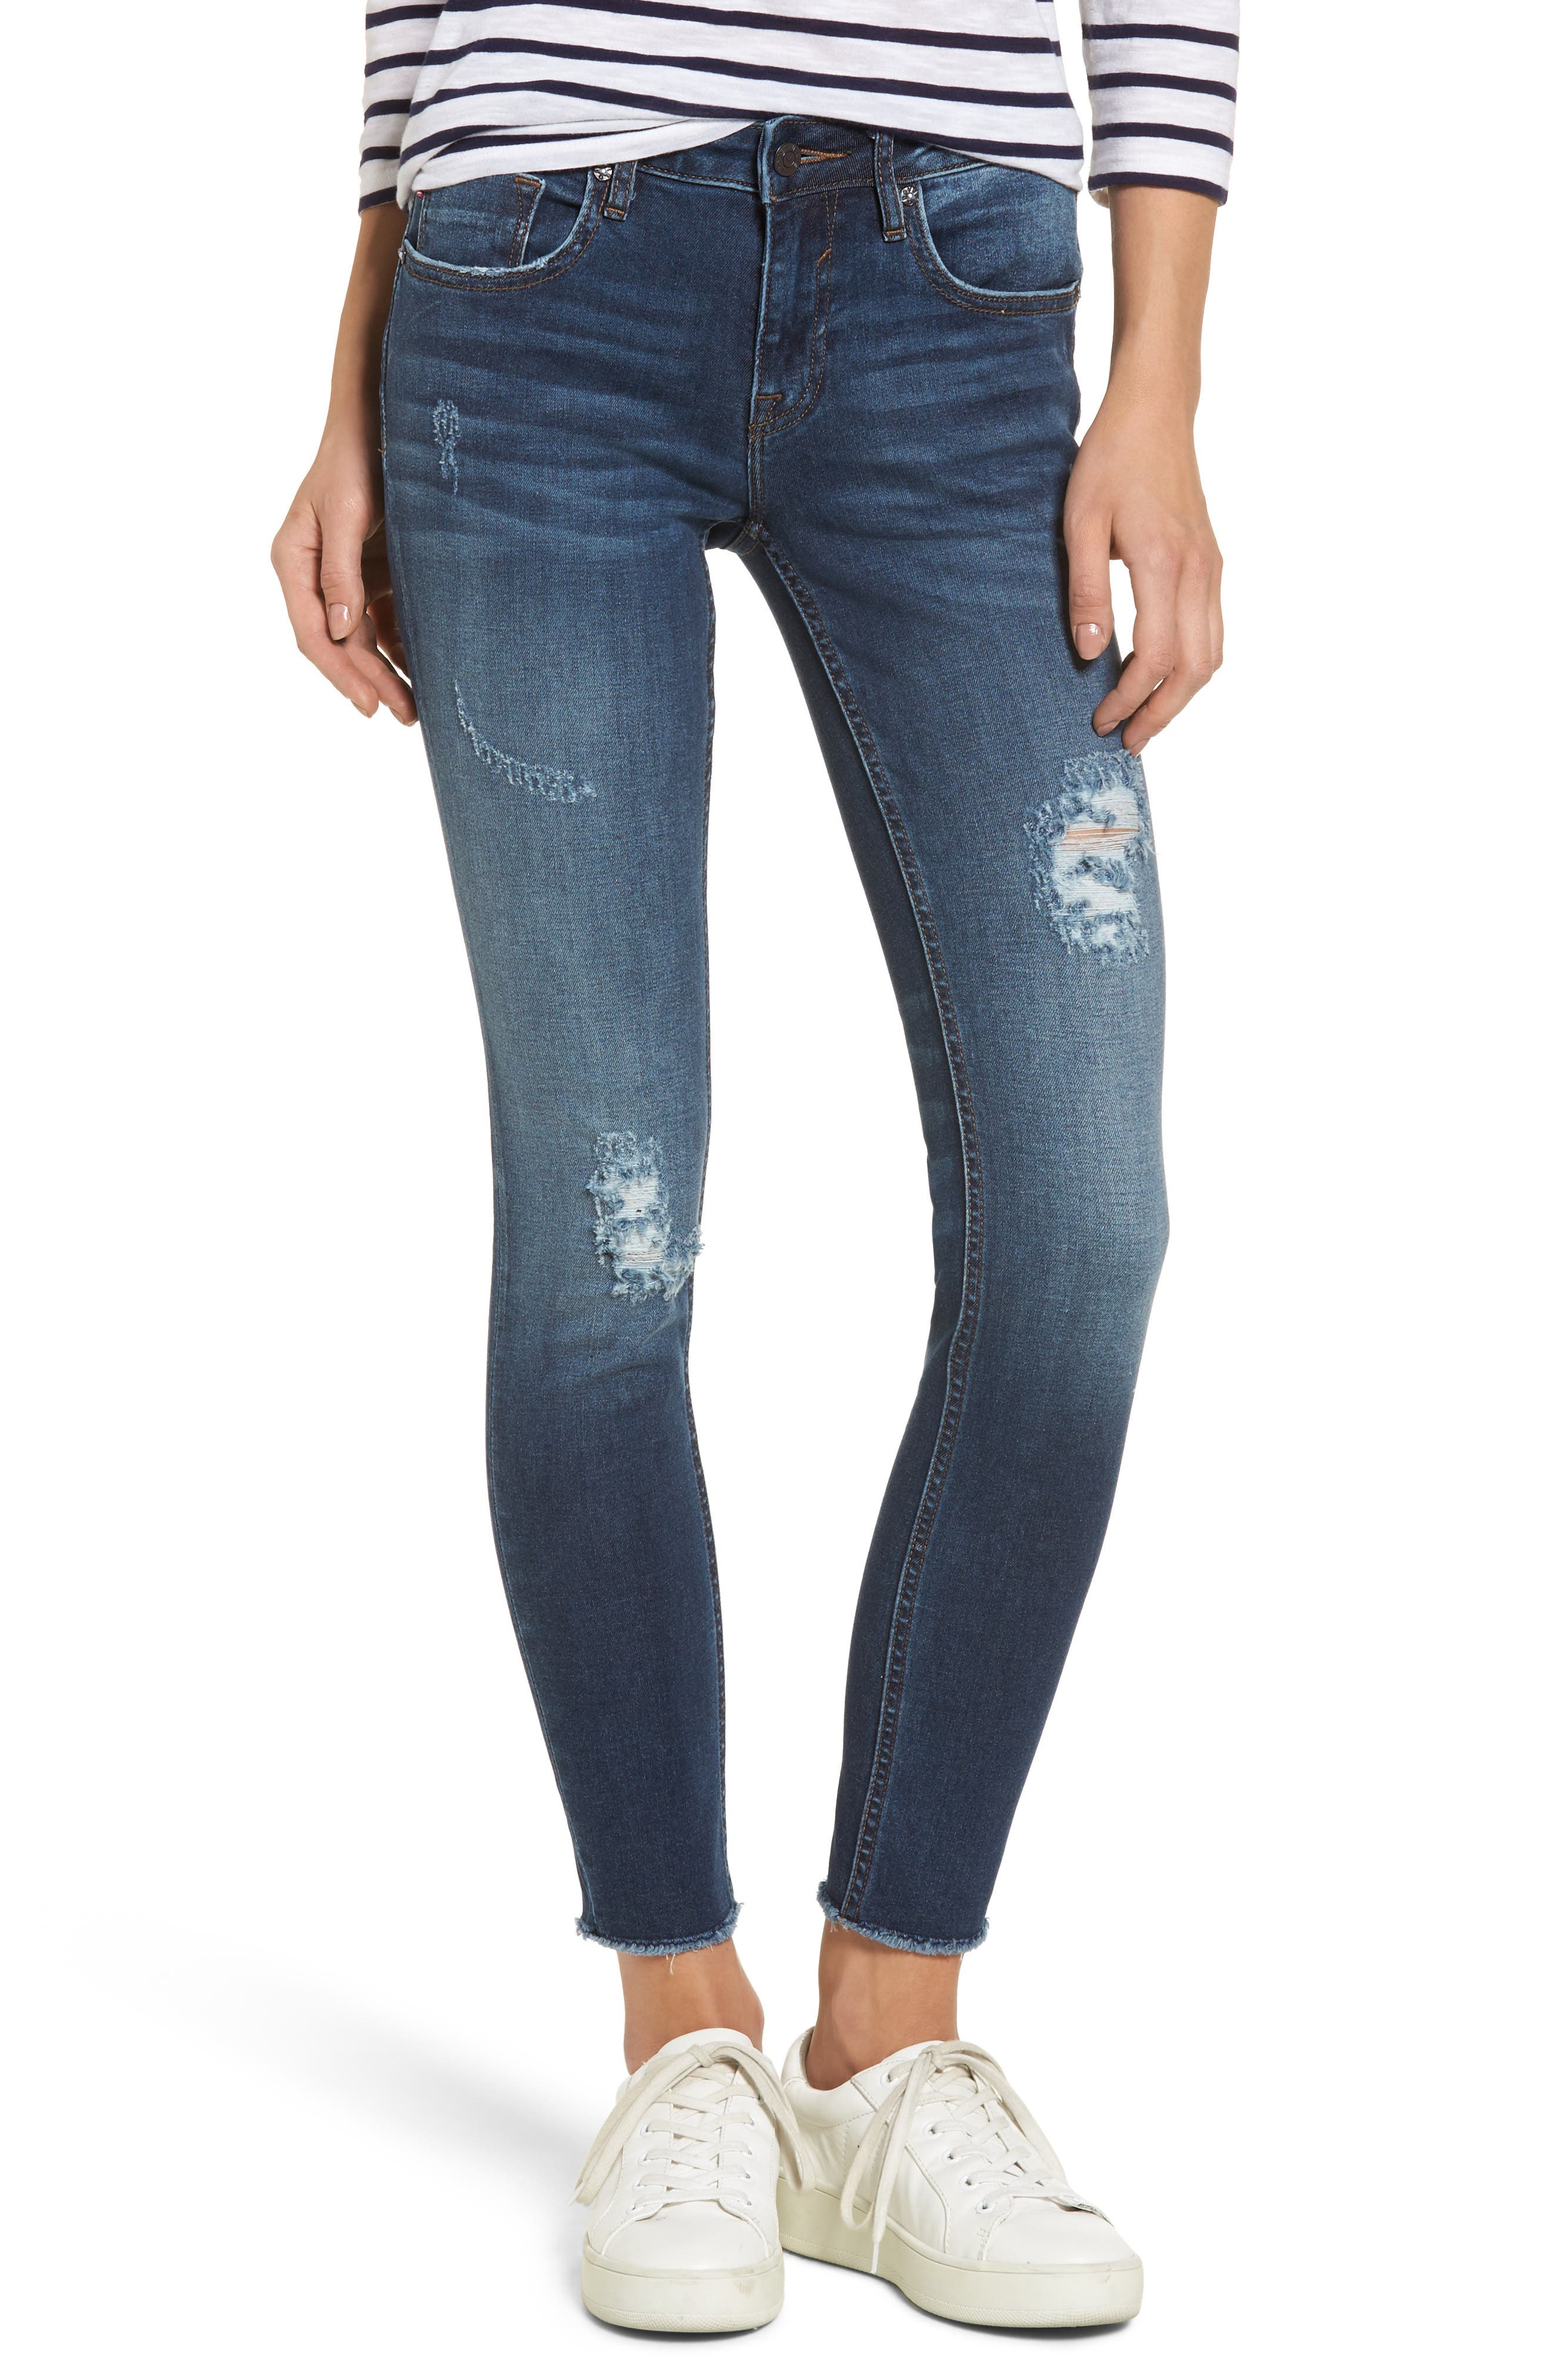 Jagger Distressed Skinny Jeans,                             Main thumbnail 1, color,                             403